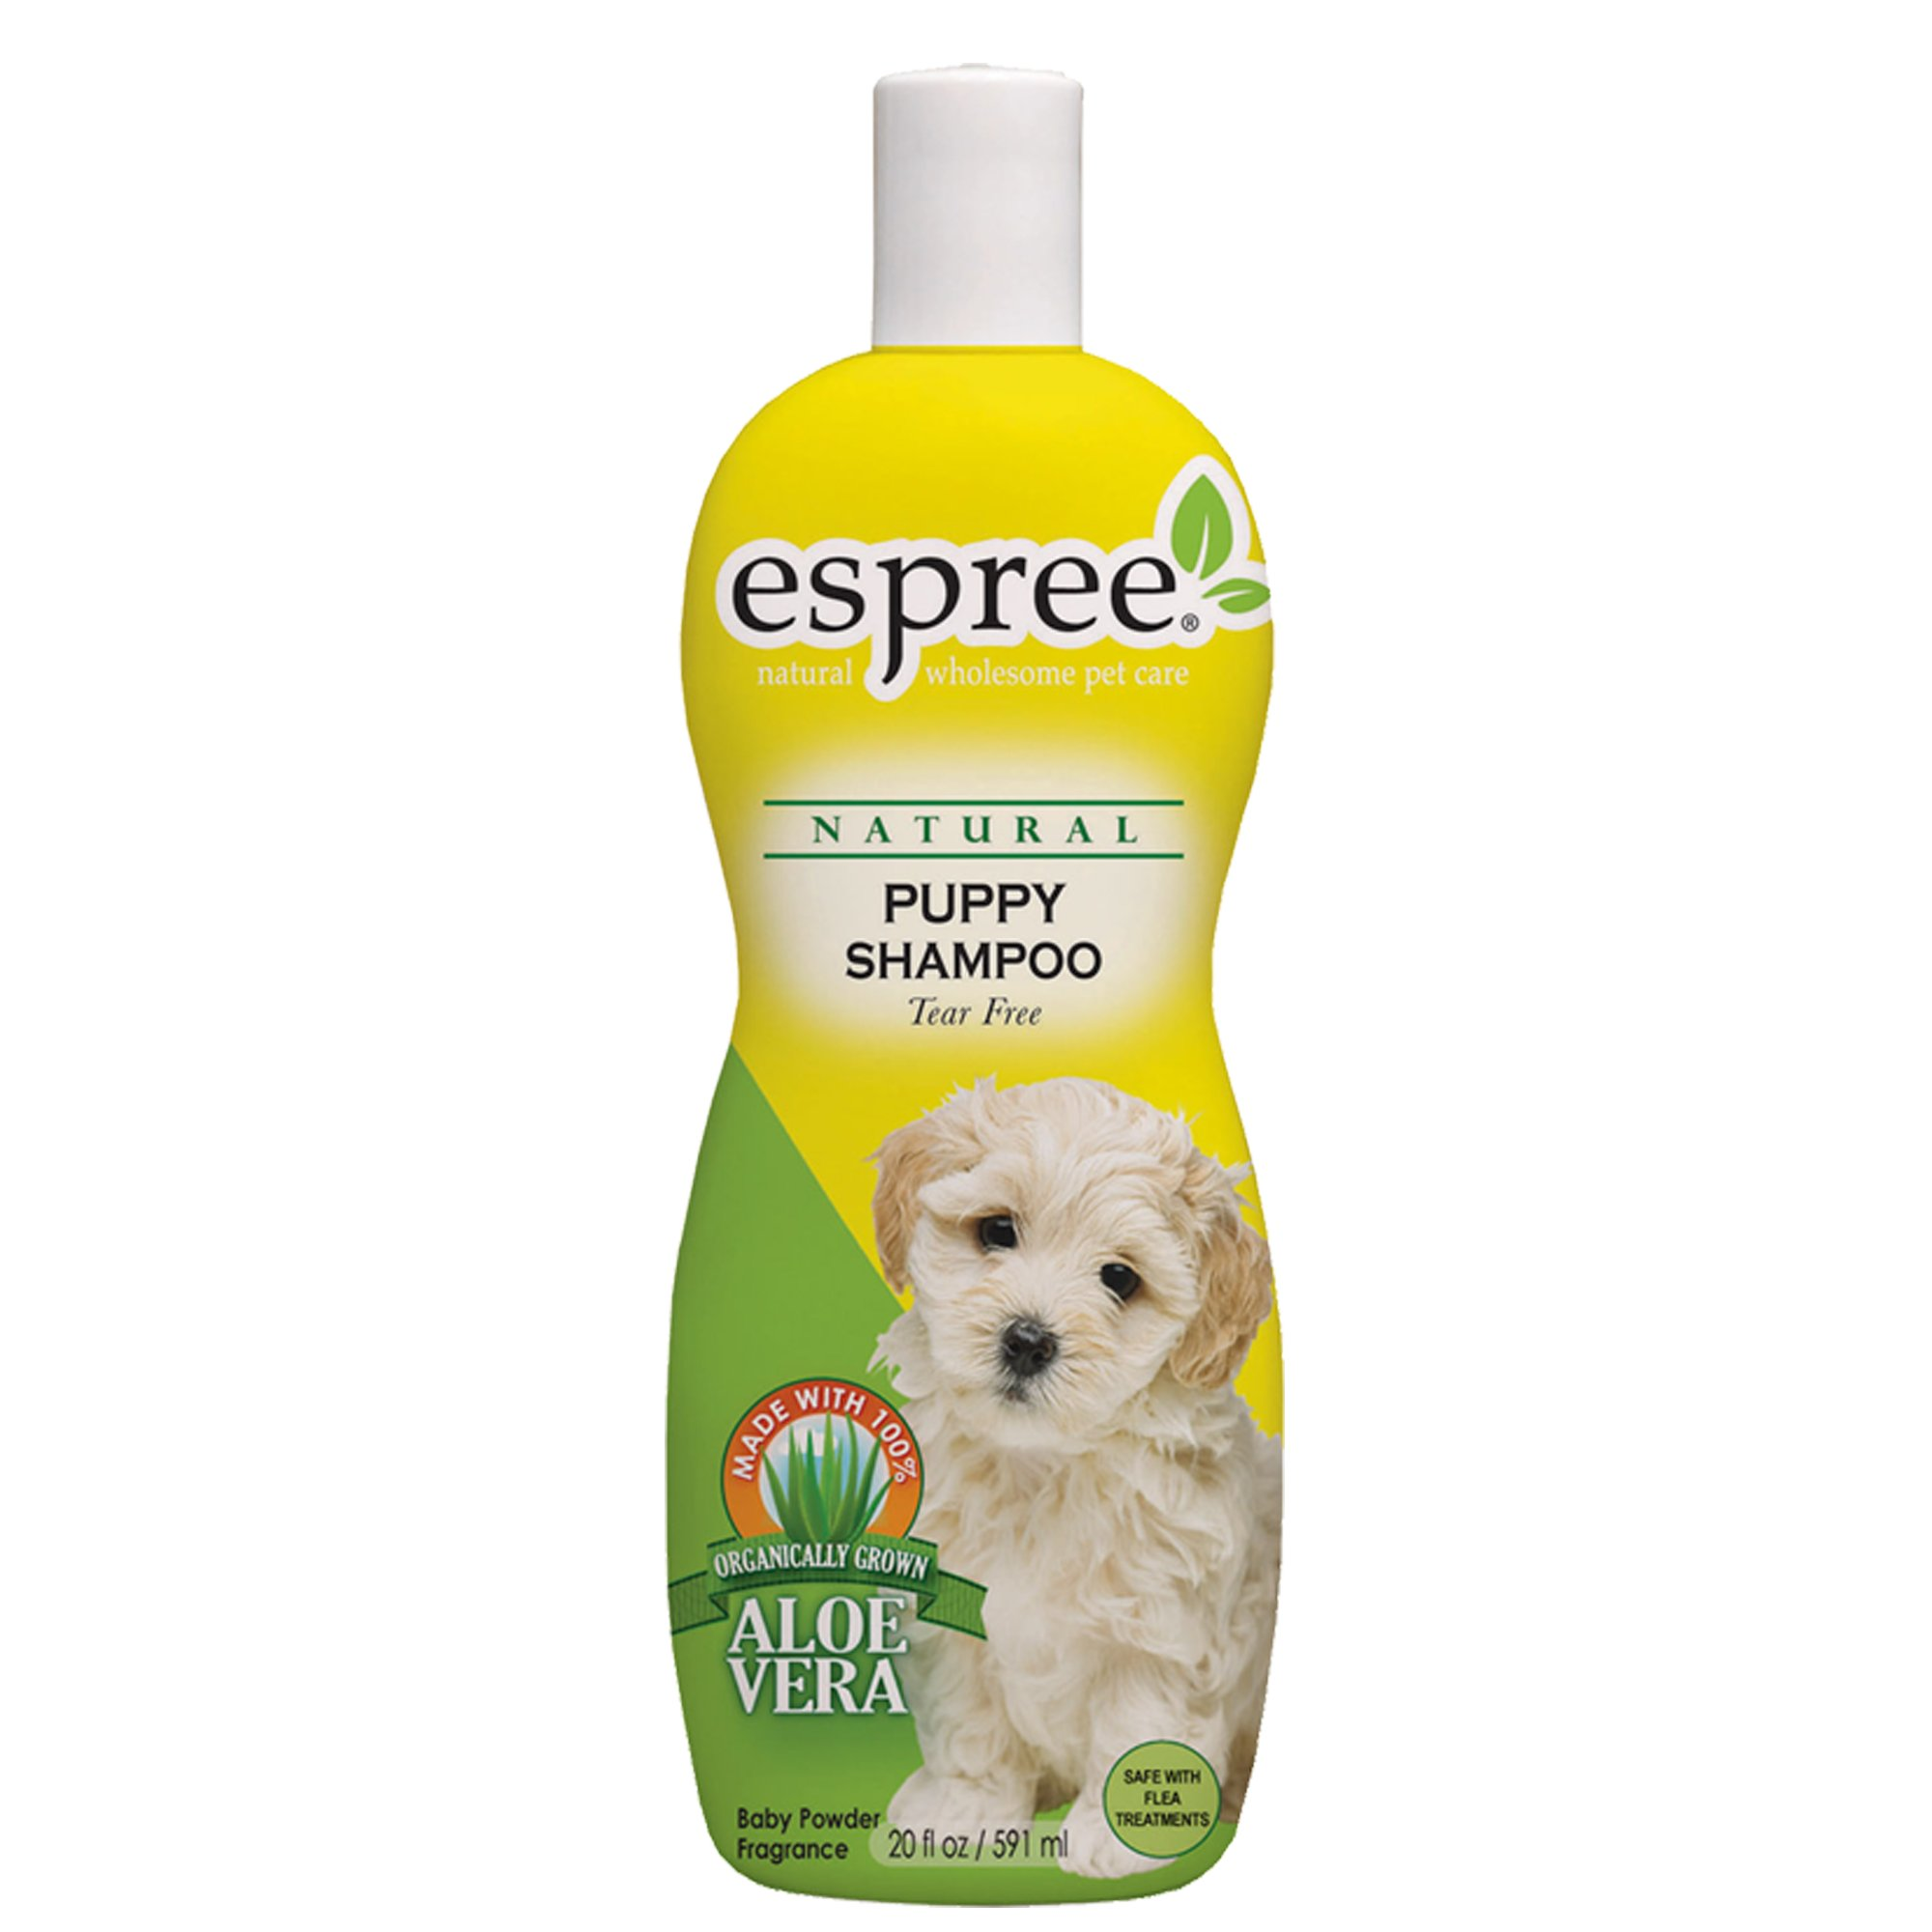 Espree Natural Puppy Shampoo